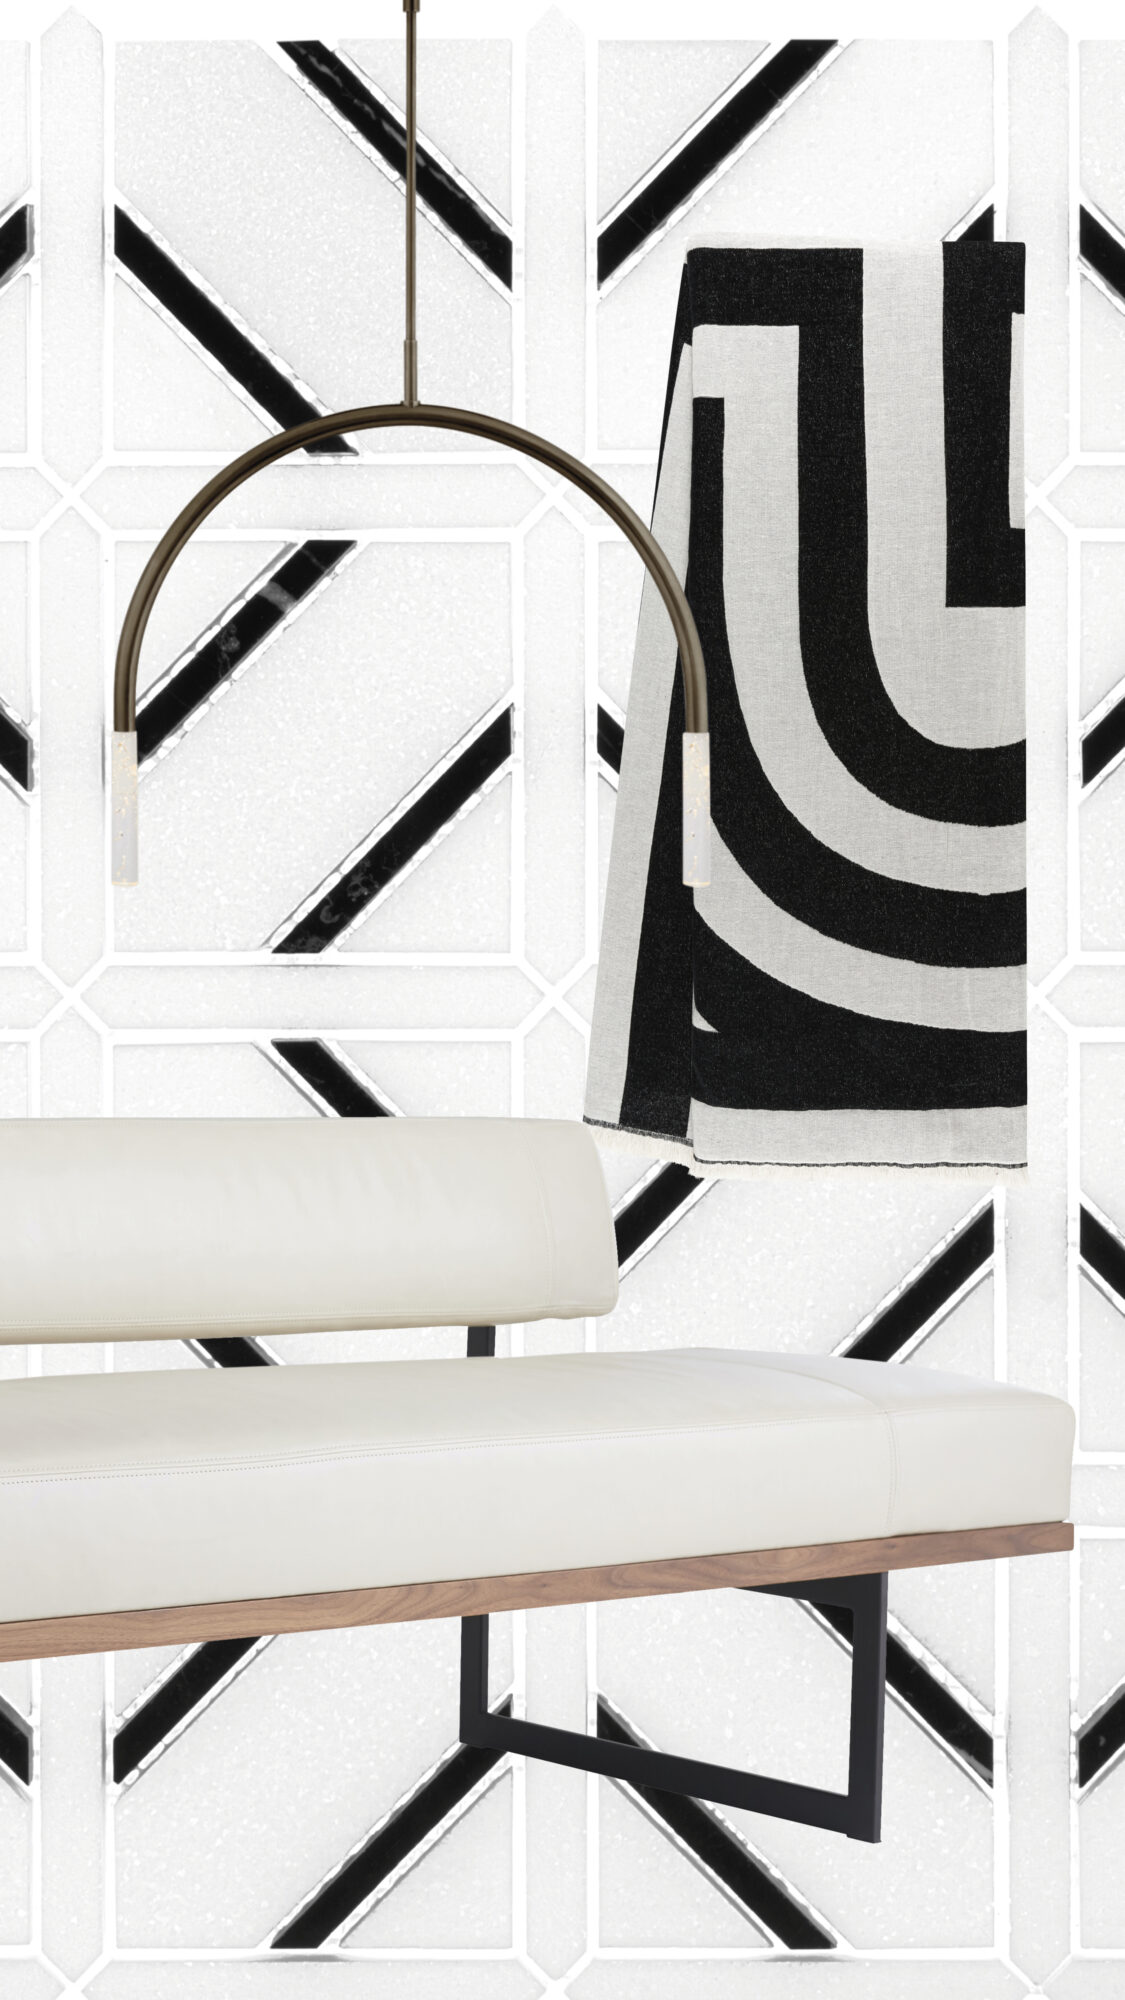 Up The Chic Factor Of Any Room With These Black-And-White Pieces Inspired By The Classic Color Combo